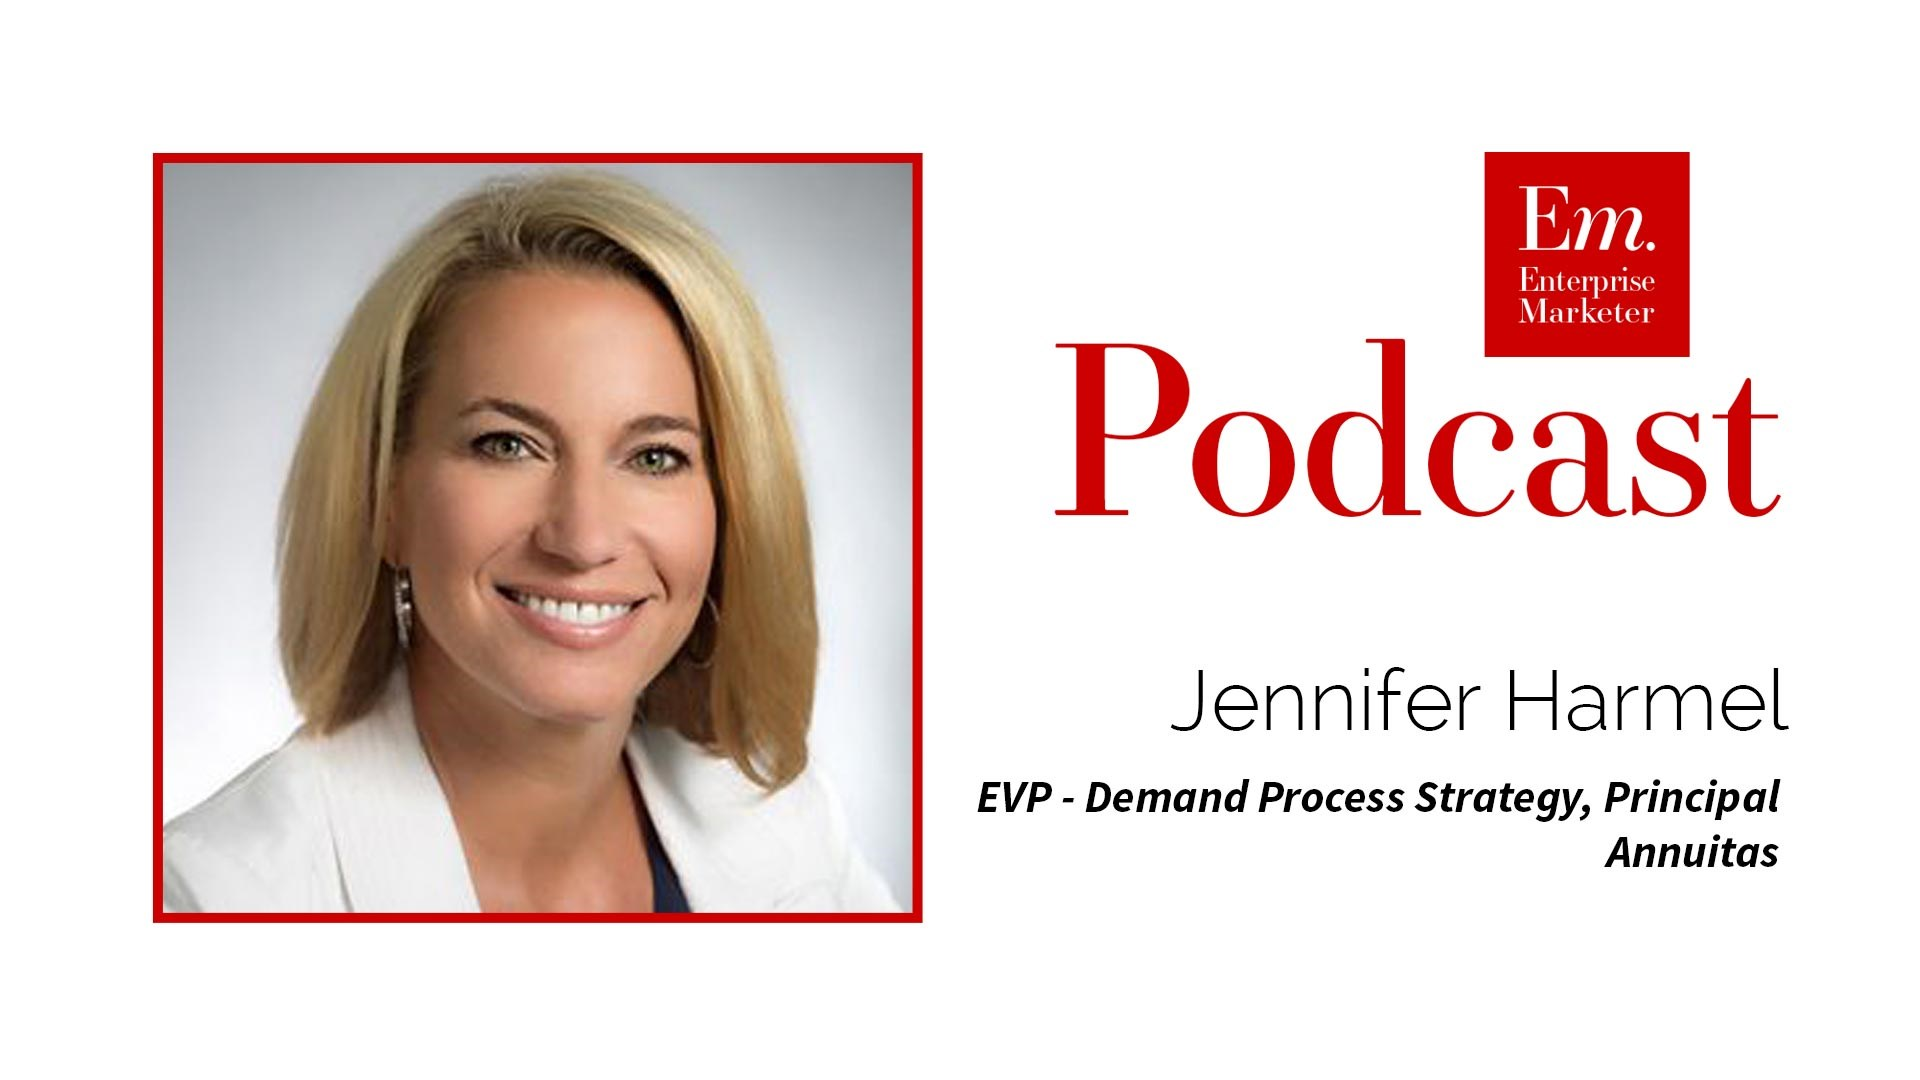 Jennifer Harmel on Change Management in Marketing